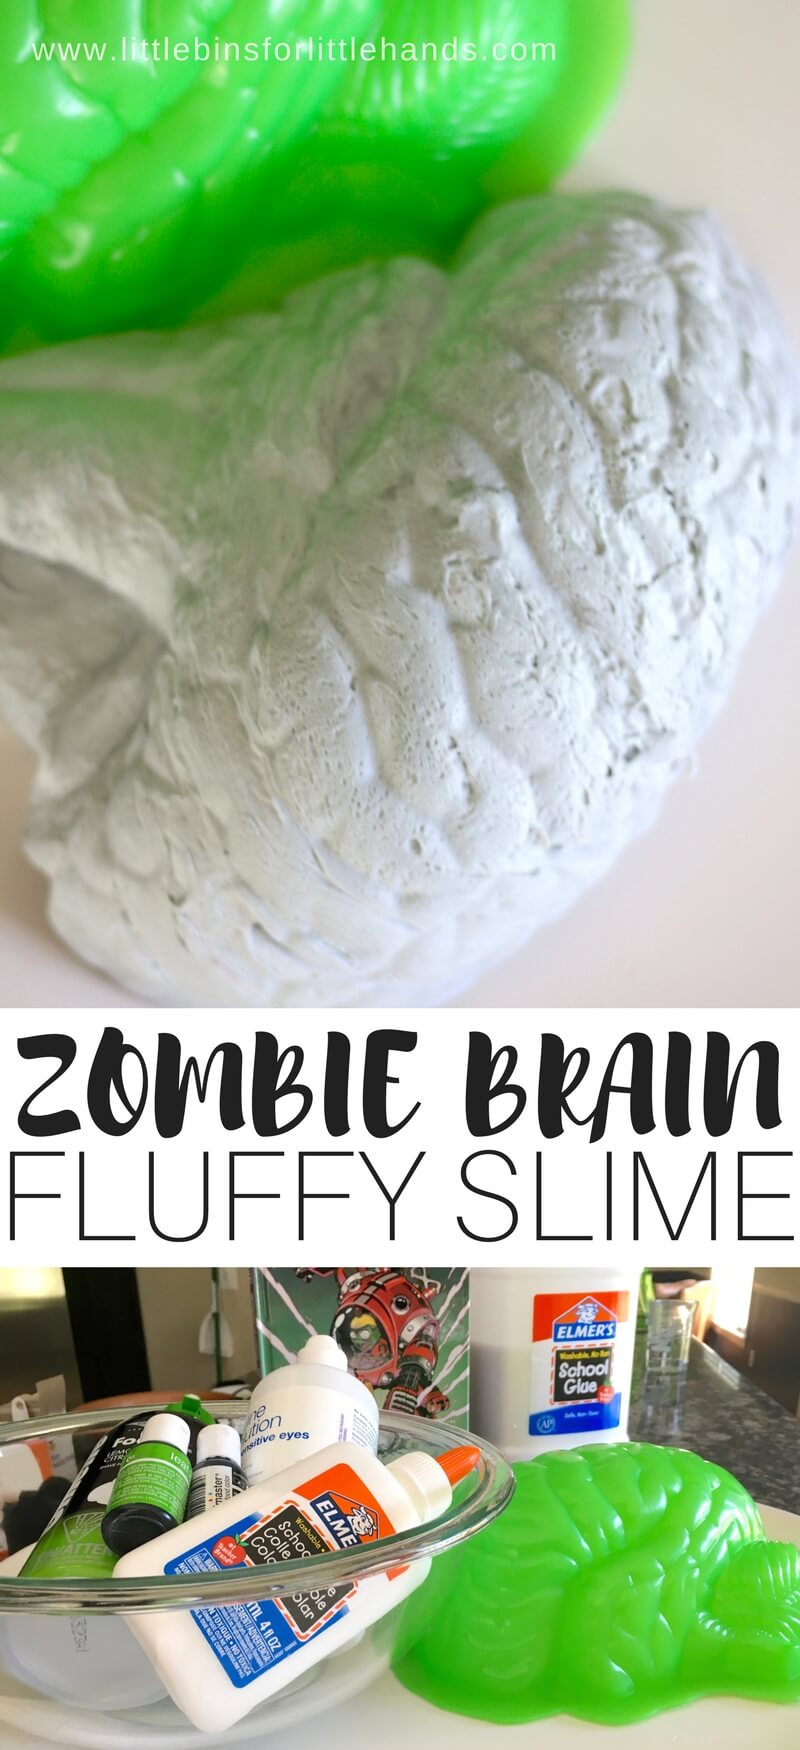 Learn how to make homemade zombie slime with our fluffy slime recipe! Fun Halloween slime recipe idea with zombie brains. Use our easy fluffy slime shaving cream recipe for making homemade slime perfect for kid science and sensory play.